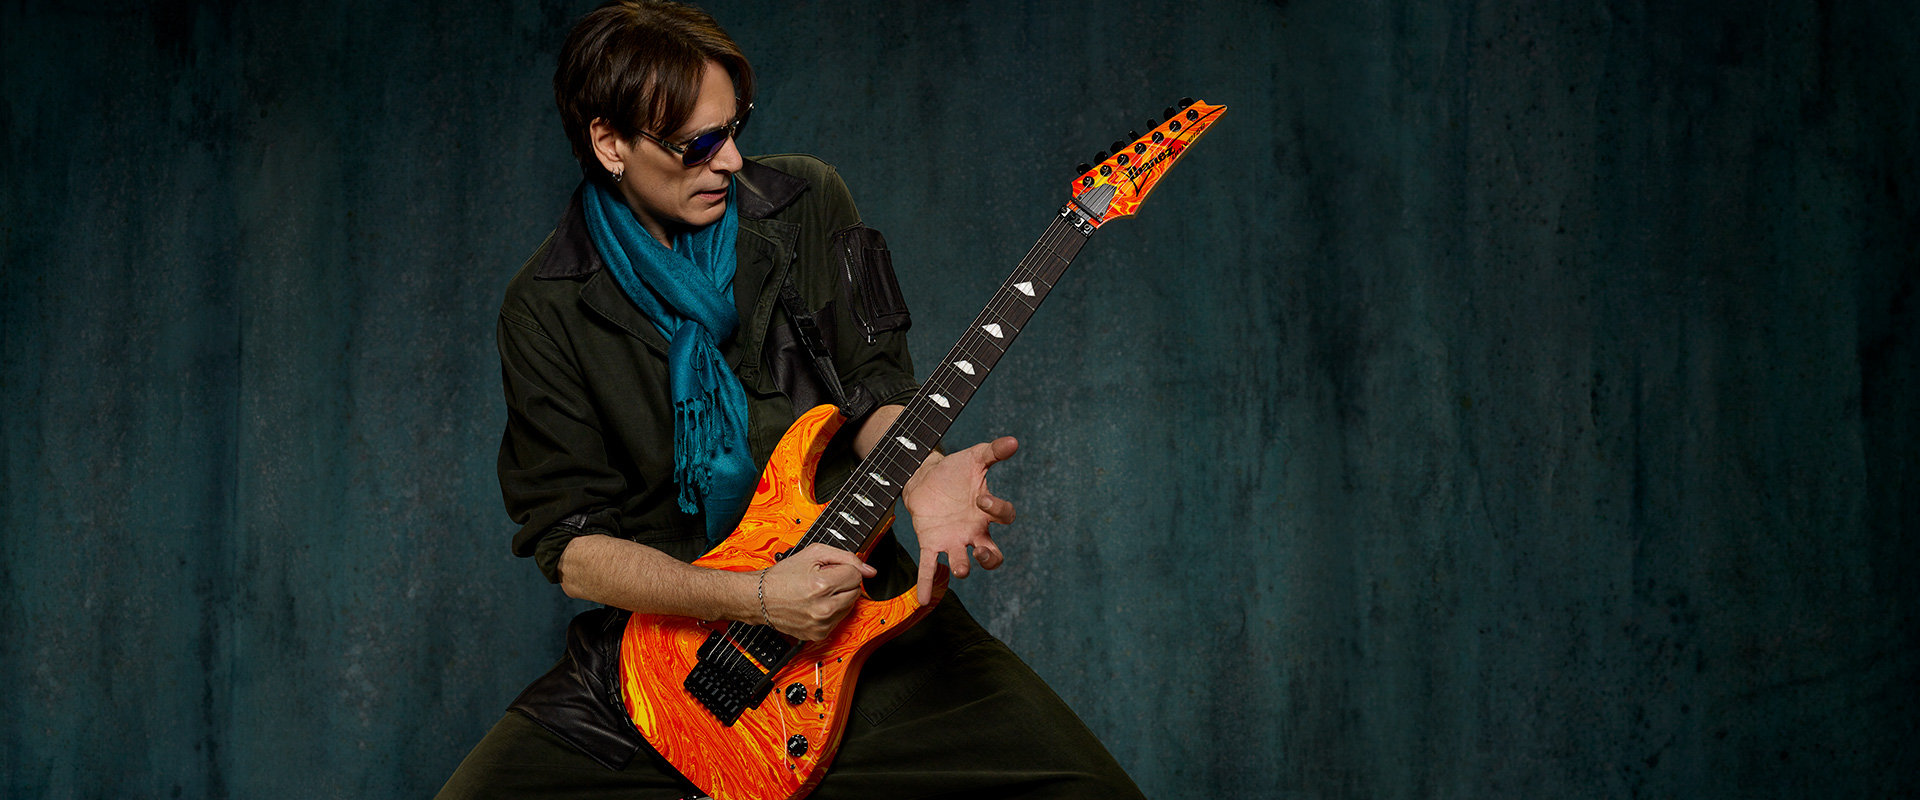 Steve Vai for DiMarzio